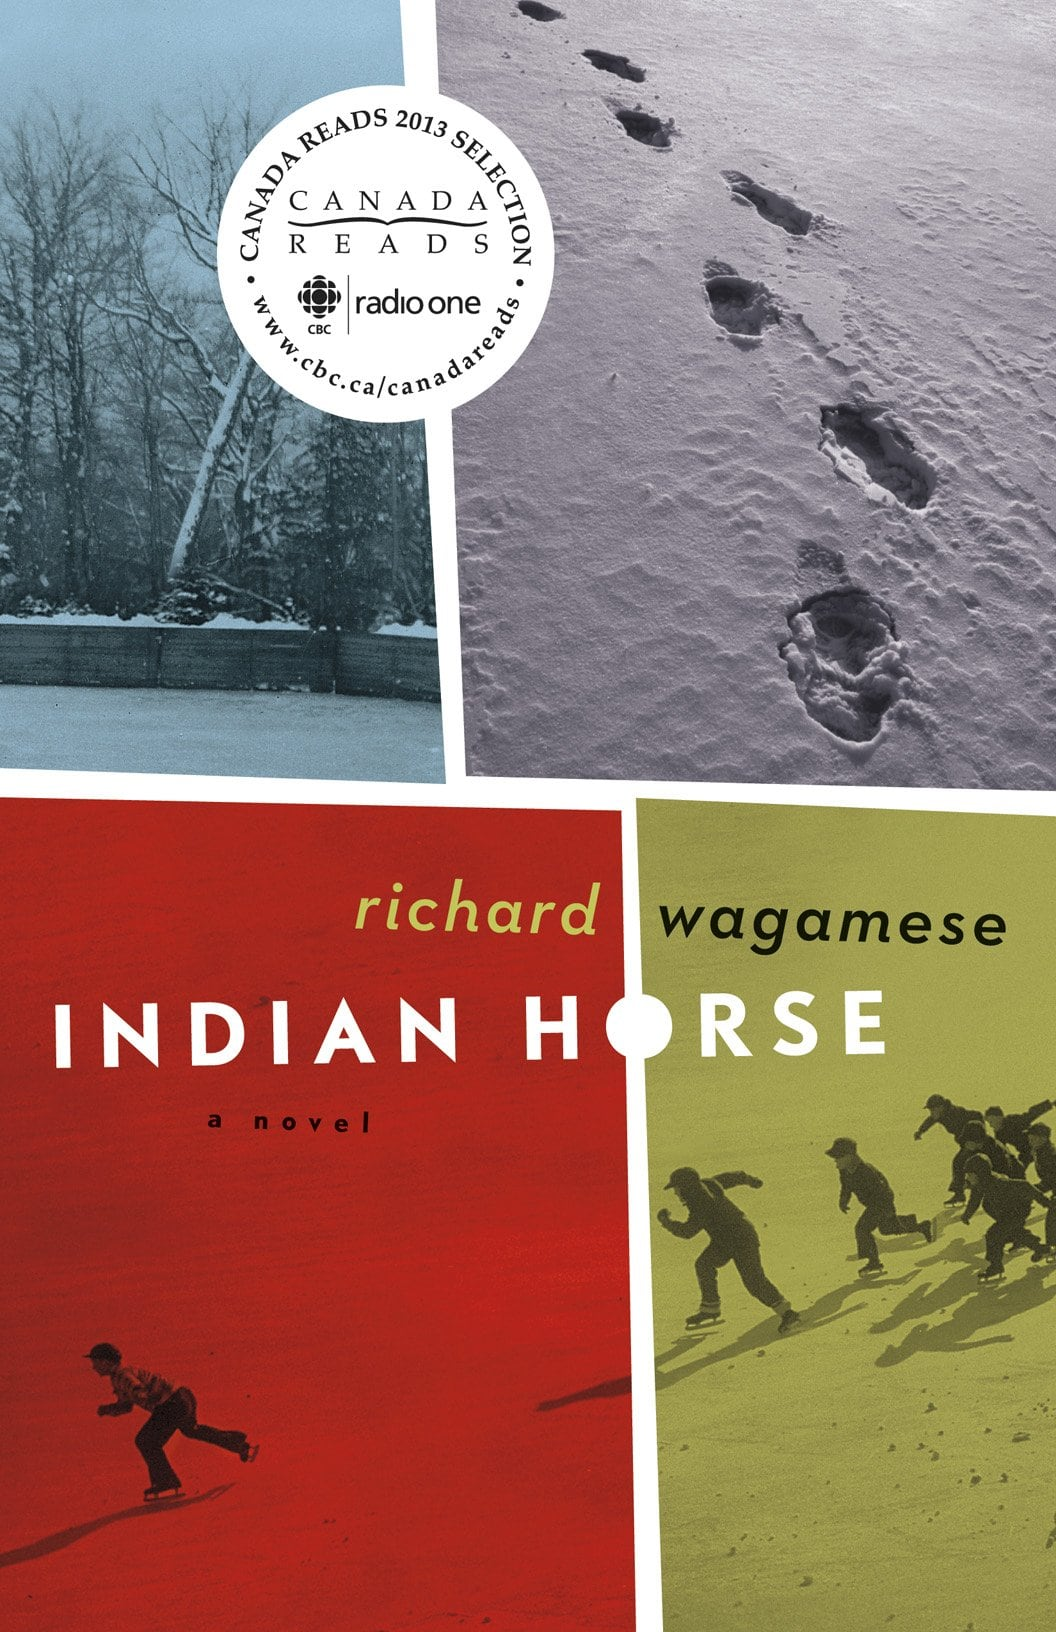 Indian Horse | CBC Books